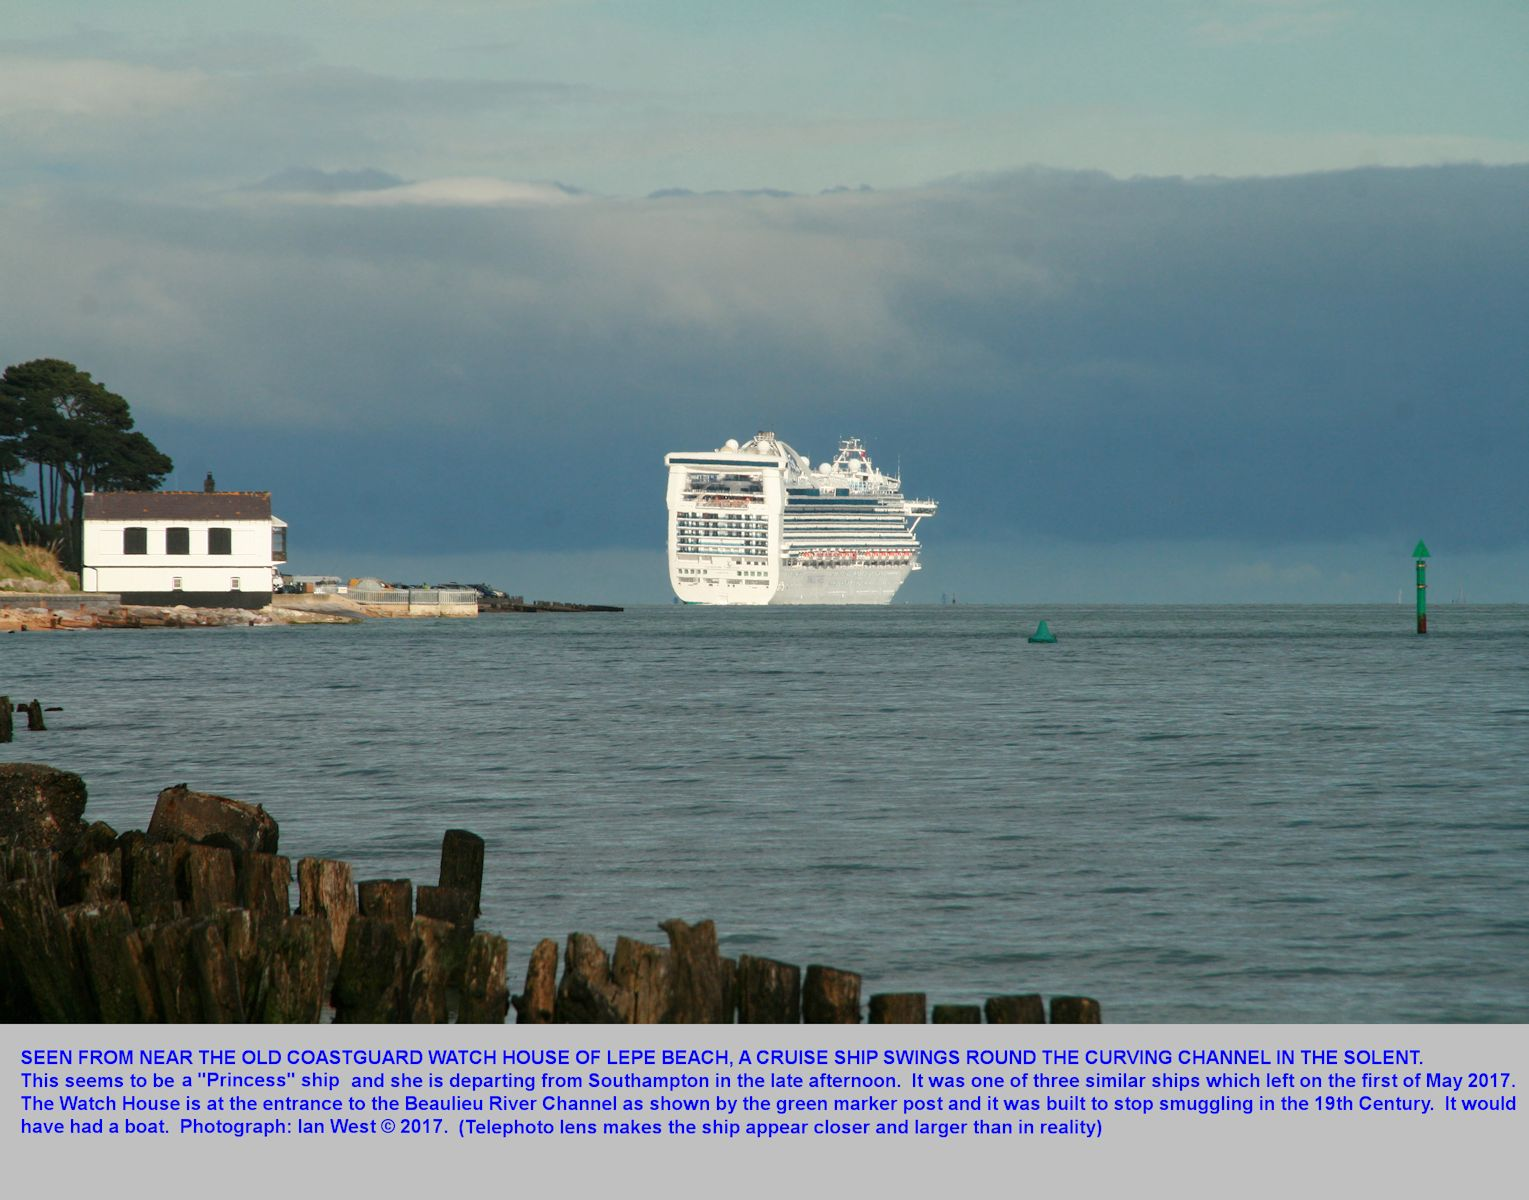 Lepe Beach, Hampshire, with its Watch House and views of the Solent, including those of ships, like this cruise ship, Ruby Princess, which is swinging round the Brambles Bank